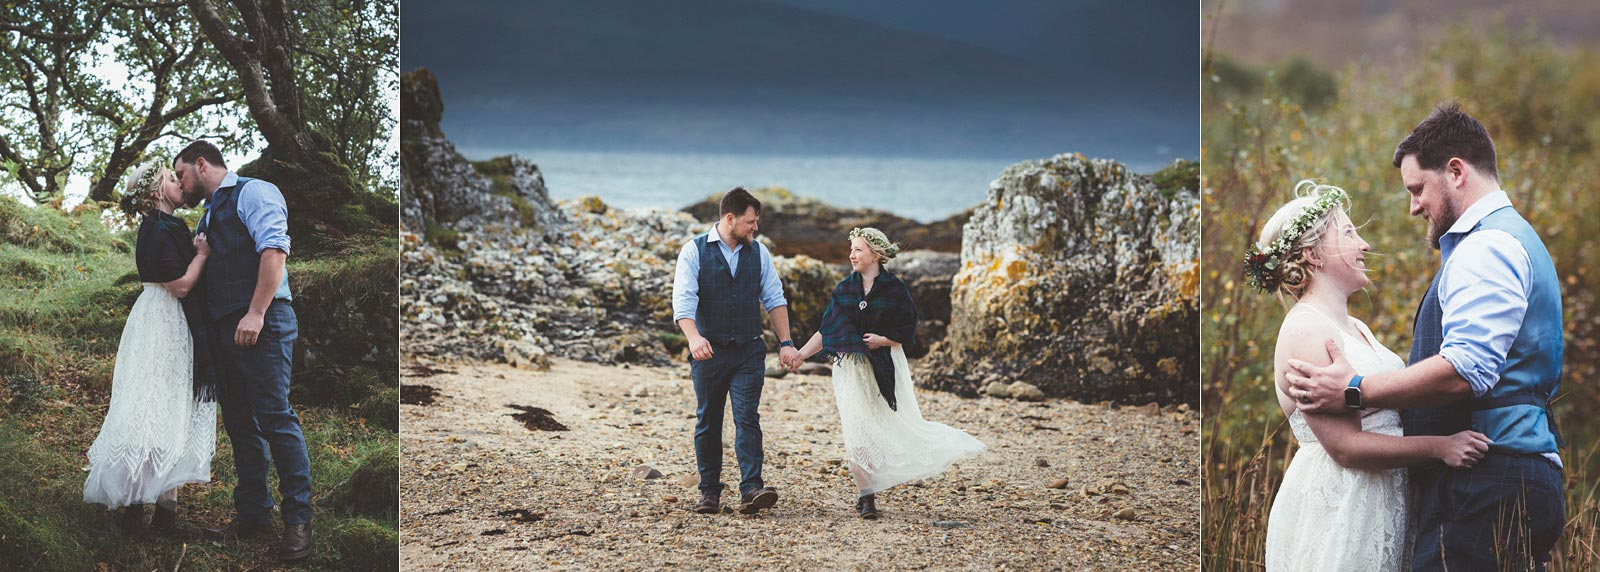 Wedding photographer Scotland. Elopememt wedding photography Isle of Skye. Wilson McSheffrey Photography